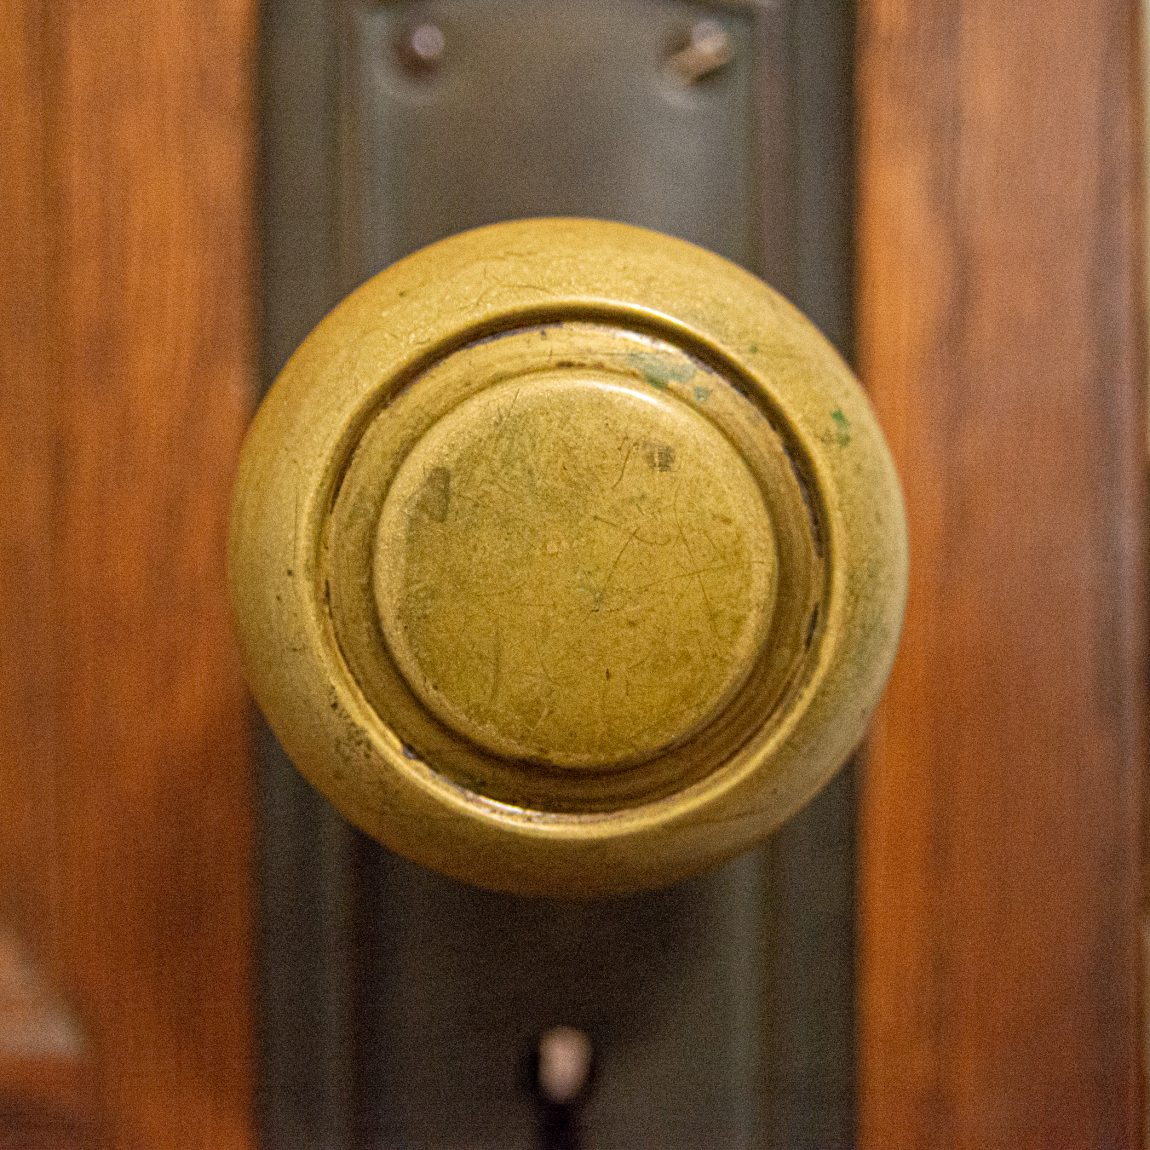 Door knobs of my house: toy room, inside